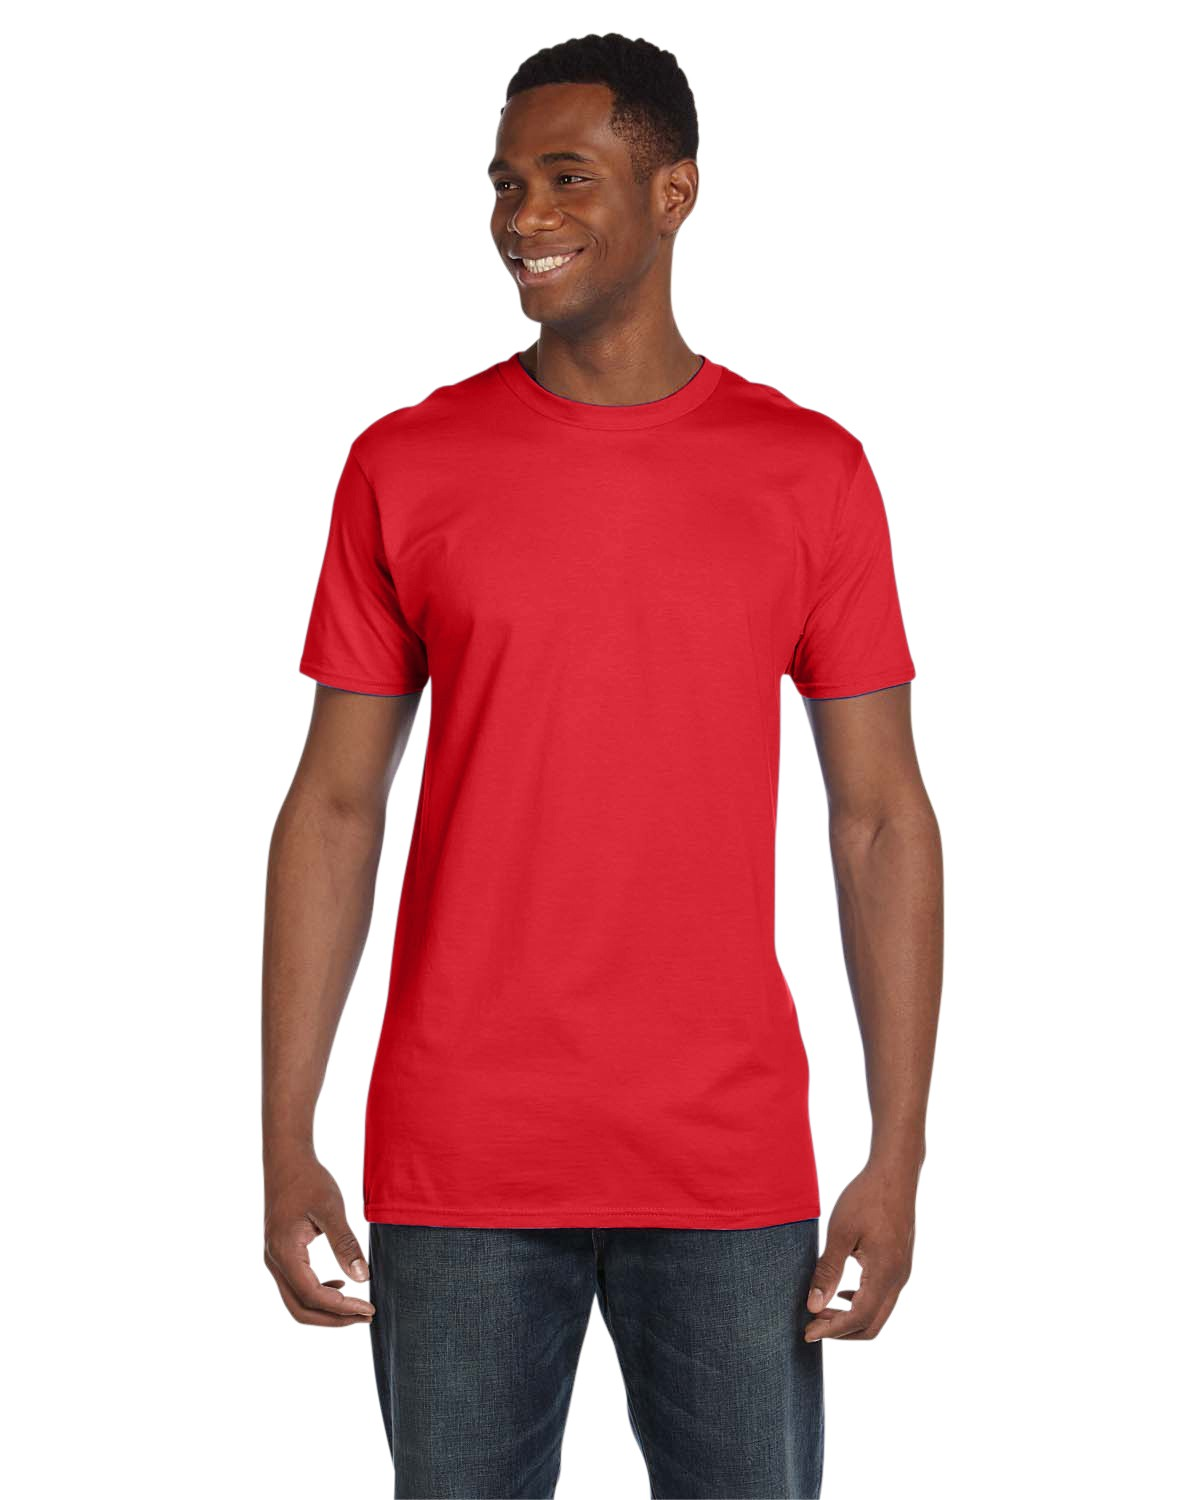 4980 Hanes Athletic Red